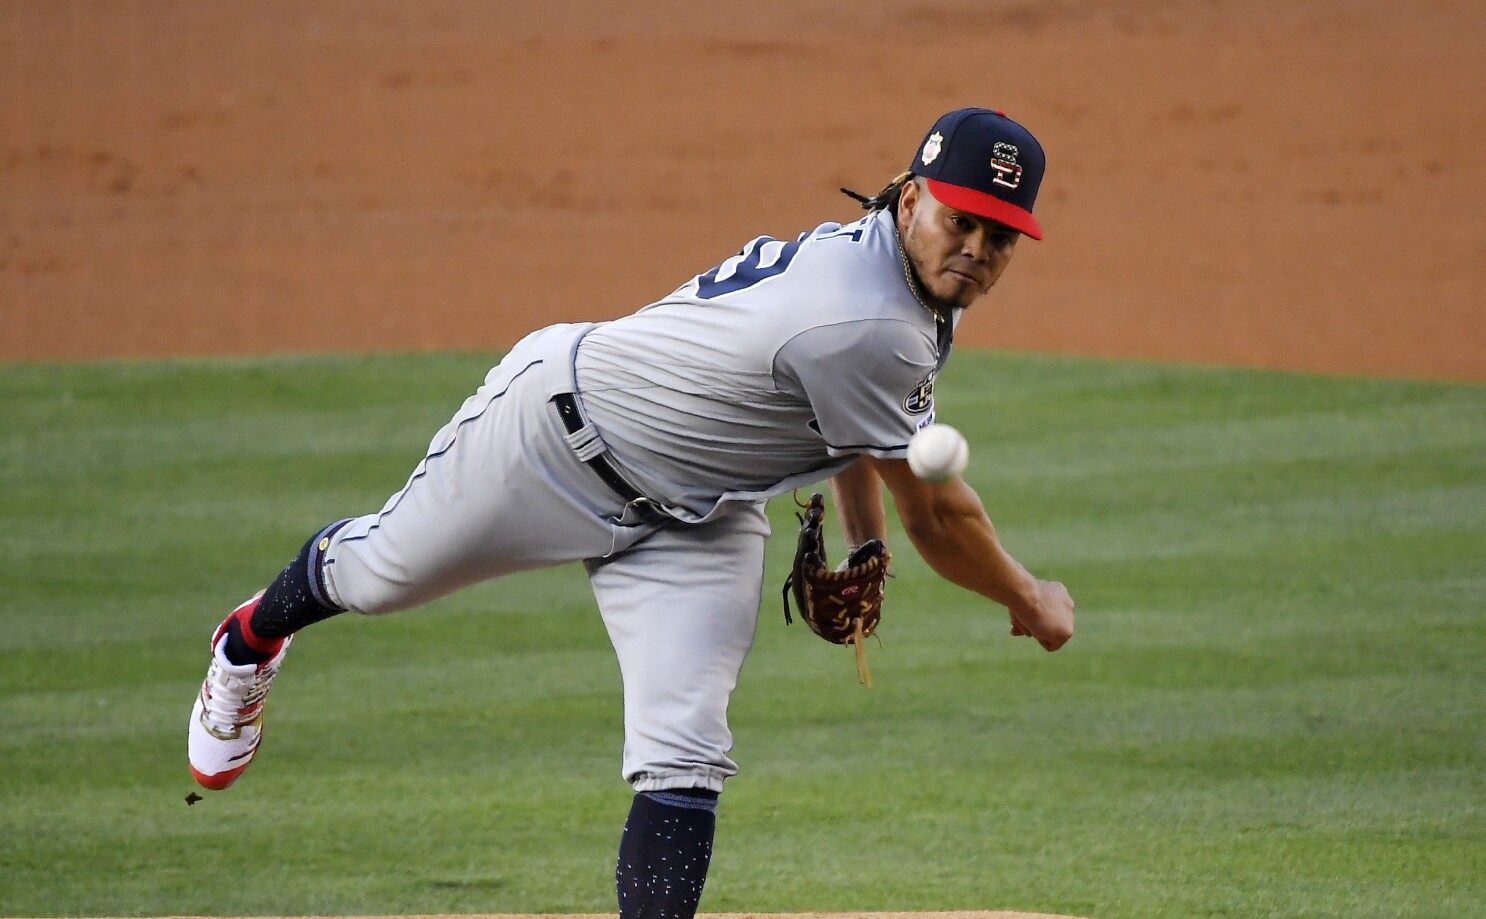 Lamet's return is the positive in another Padres loss to